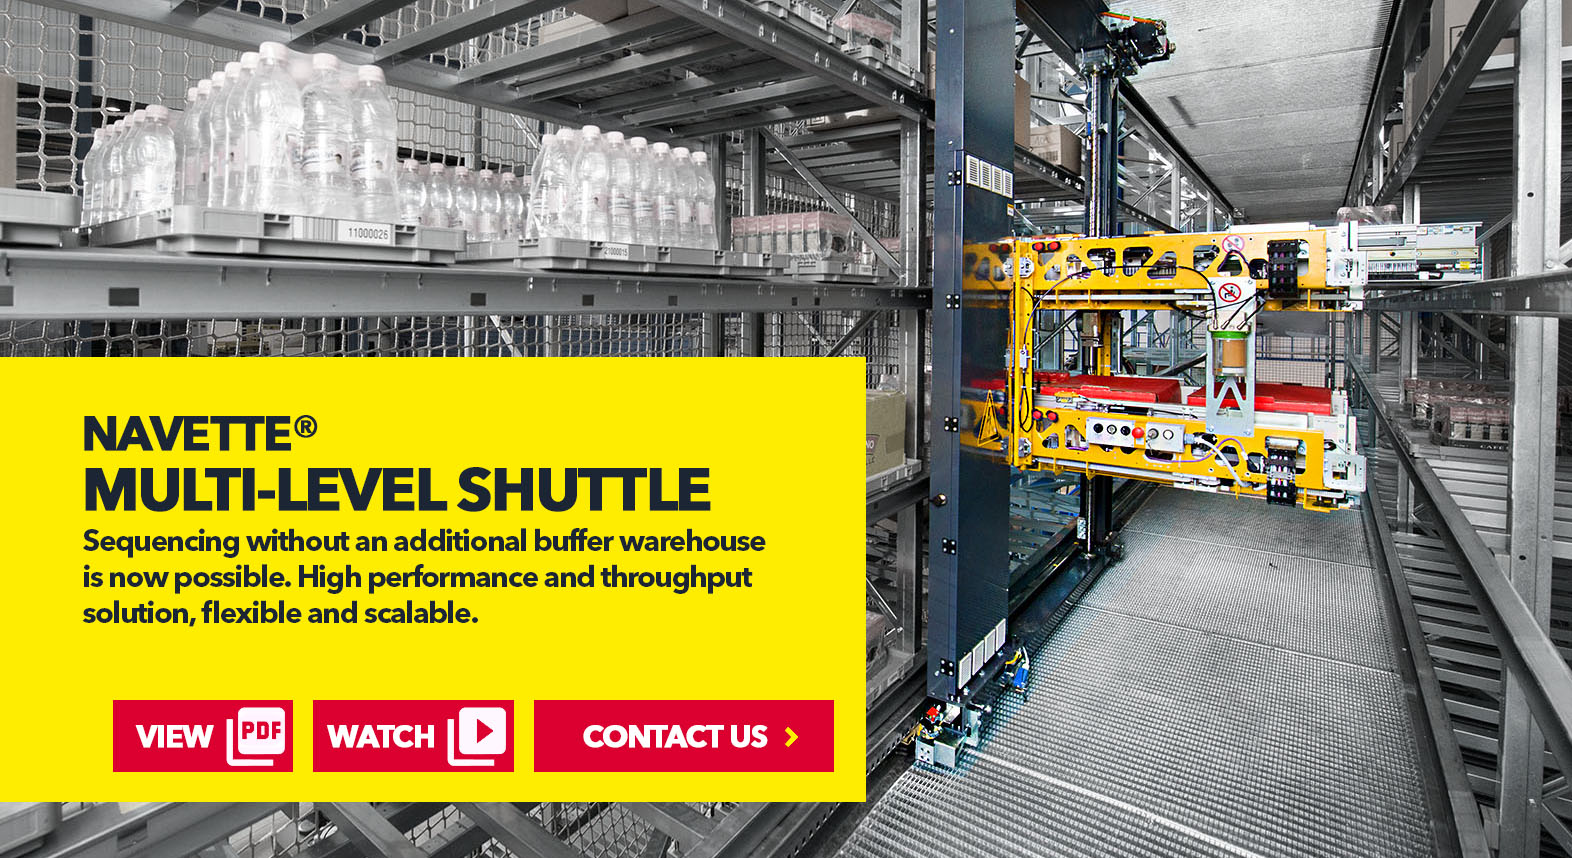 Navette Multi-Level Shuttle Systems by SSI Schaefer USA Download Guide, Watch Video, Contact Us. www.chaefershelving.com